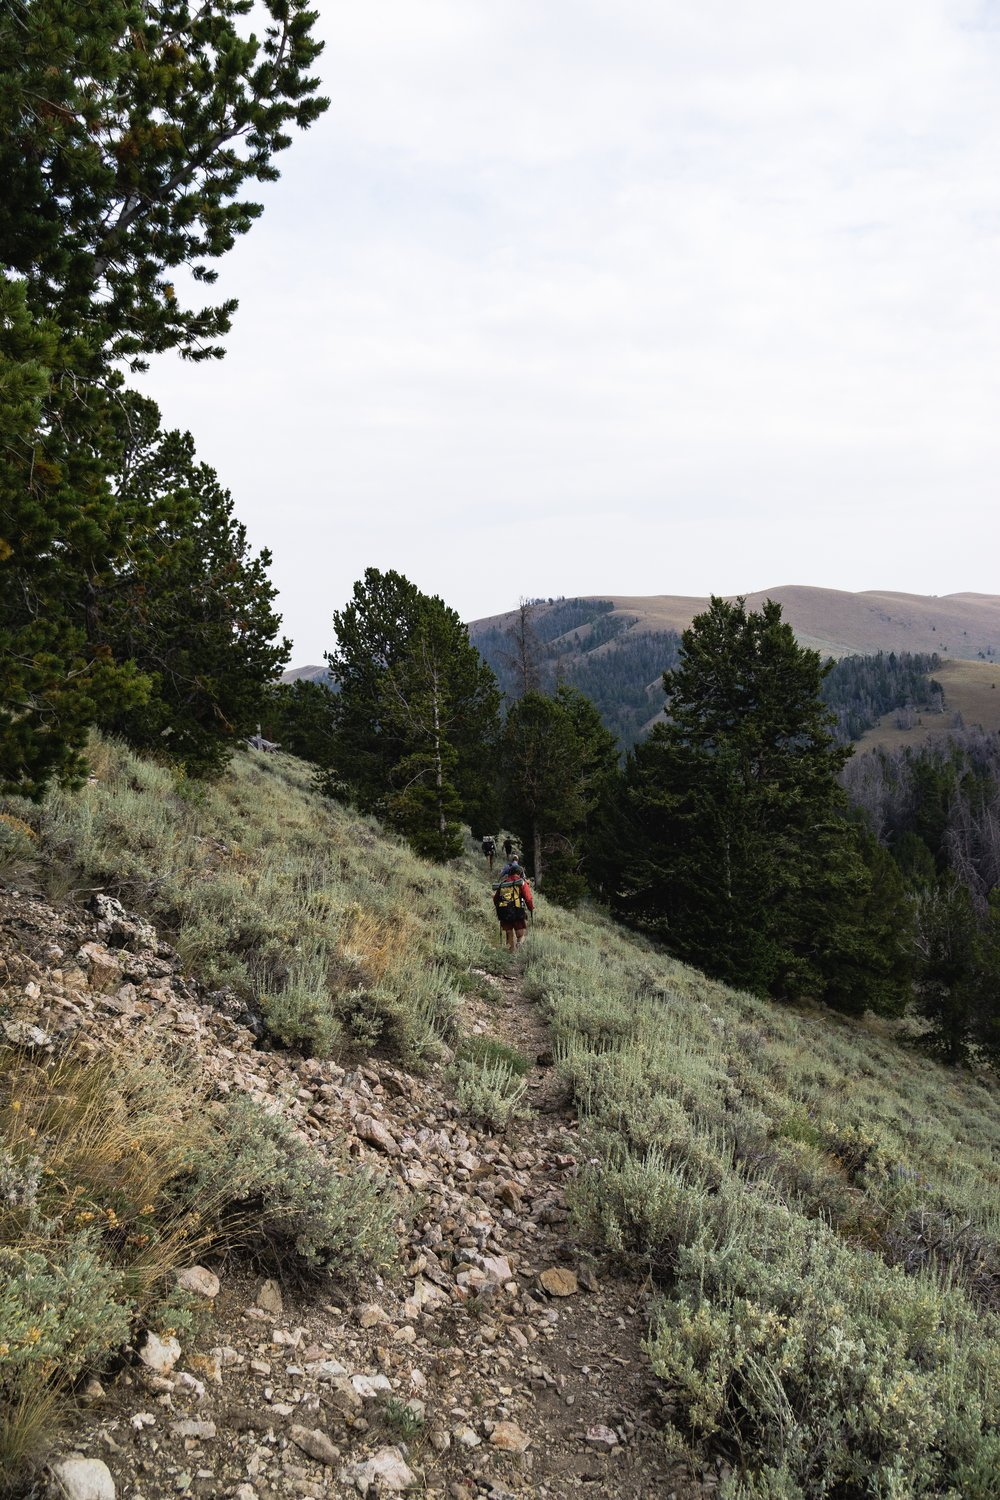 Rolling through the switchbacks down the Divide